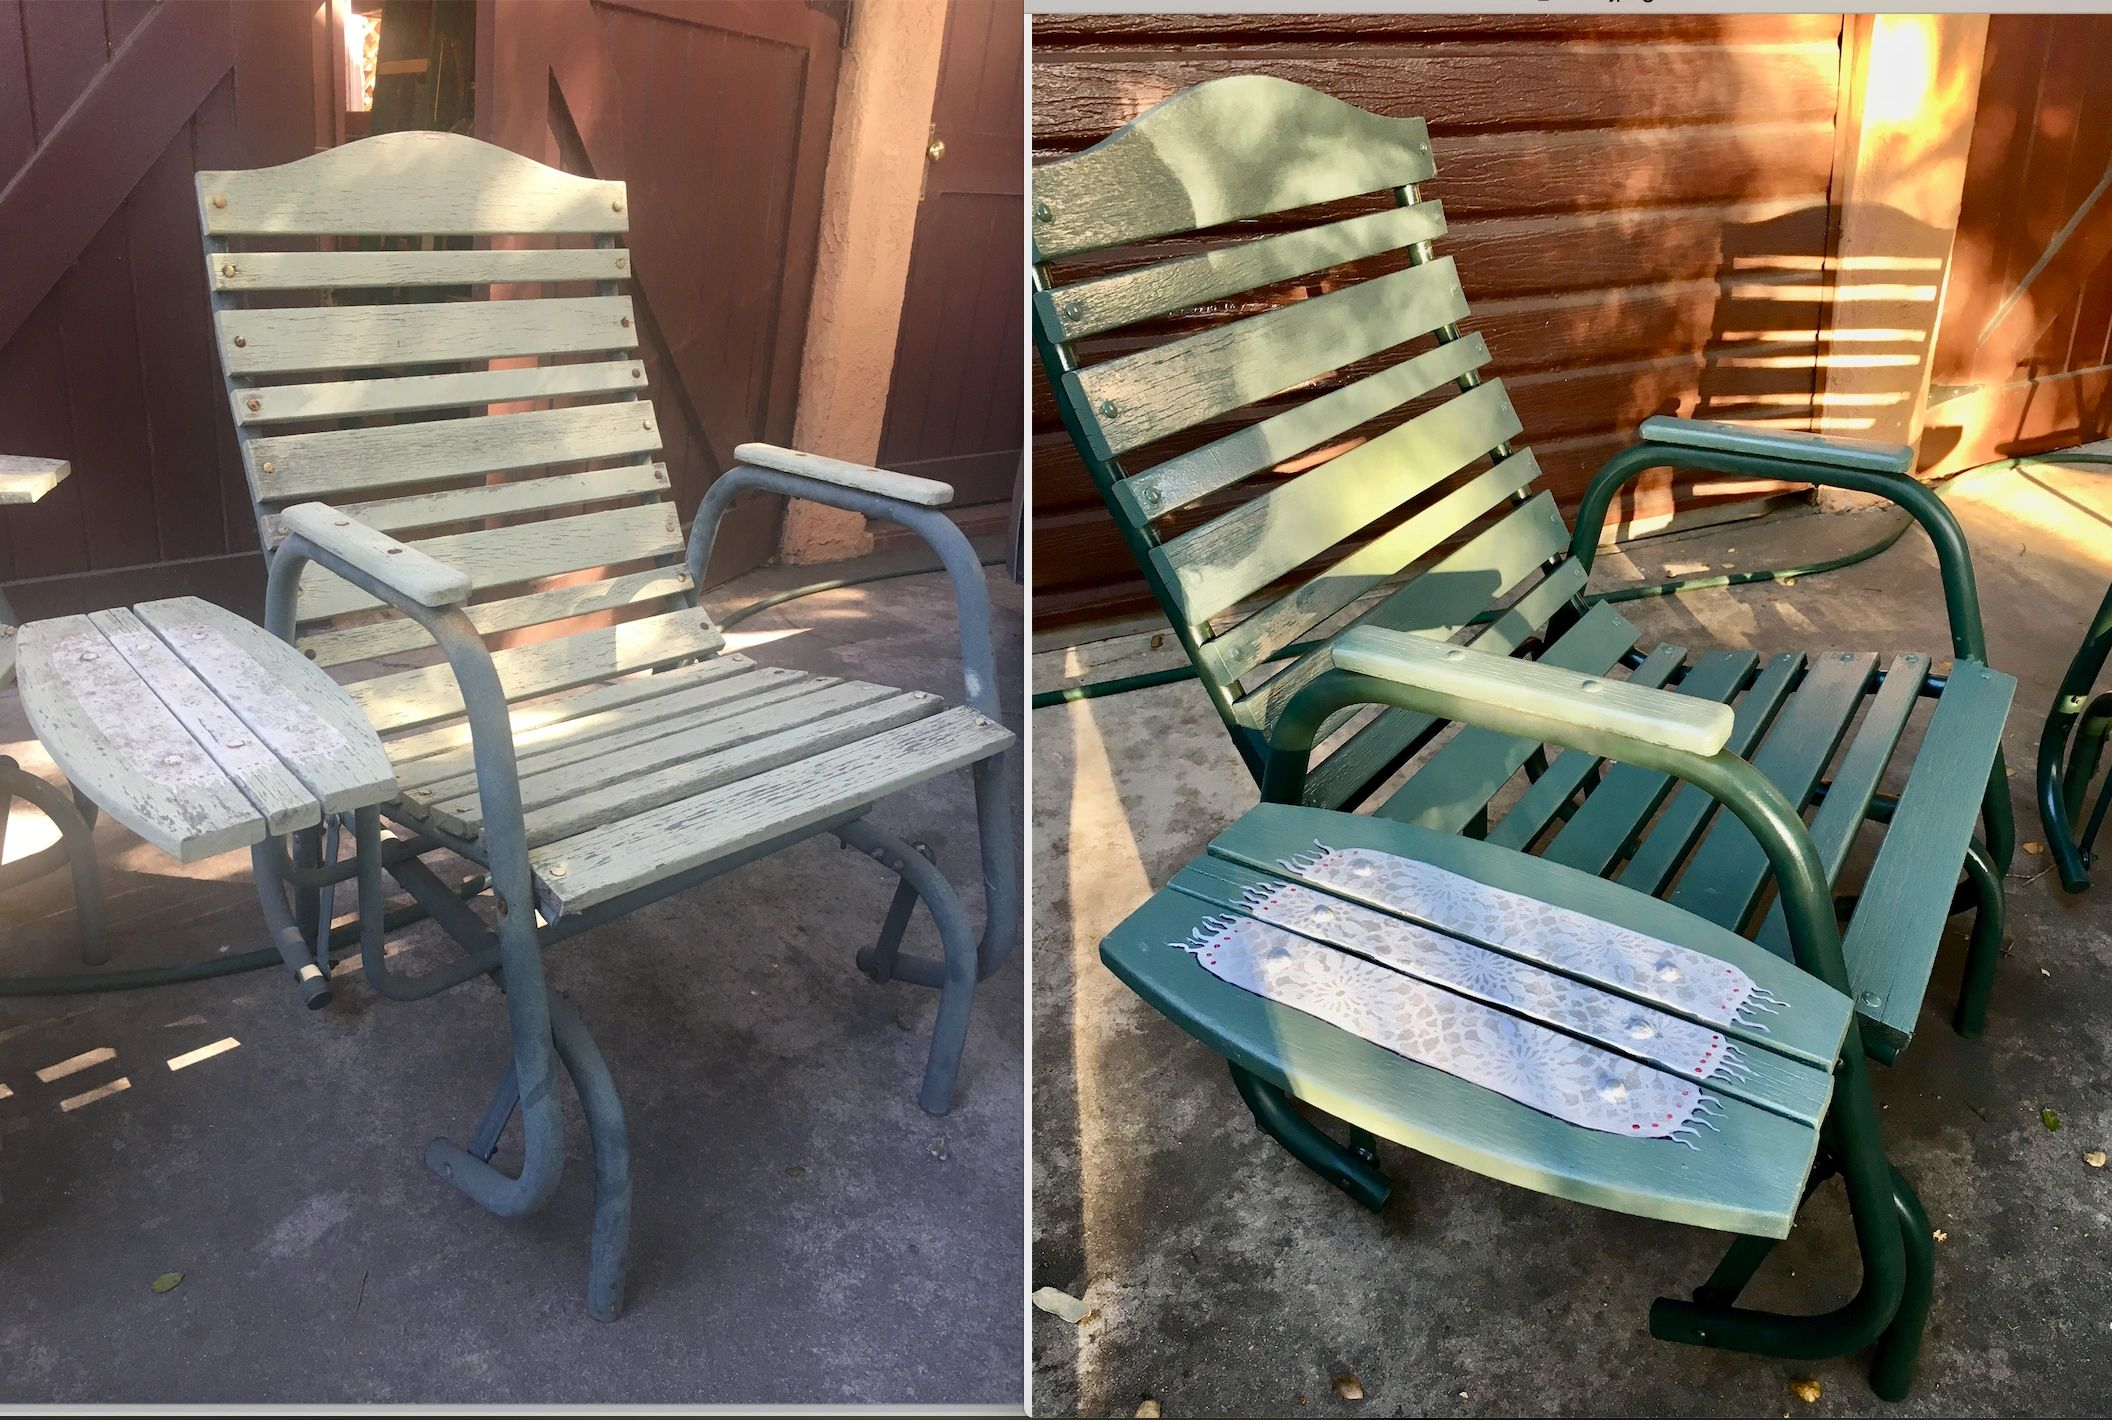 "{""blocks"":[{""key"":""fbq7r"",""text"":""Repair and repainting of 2 vintage gliding patio chairs including decorative \""doily\"" on the side tables."",""type"":""unstyled"",""depth"":0,""inlineStyleRanges"":[],""entityRanges"":[],""data"":{}}],""entityMap"":{}}"